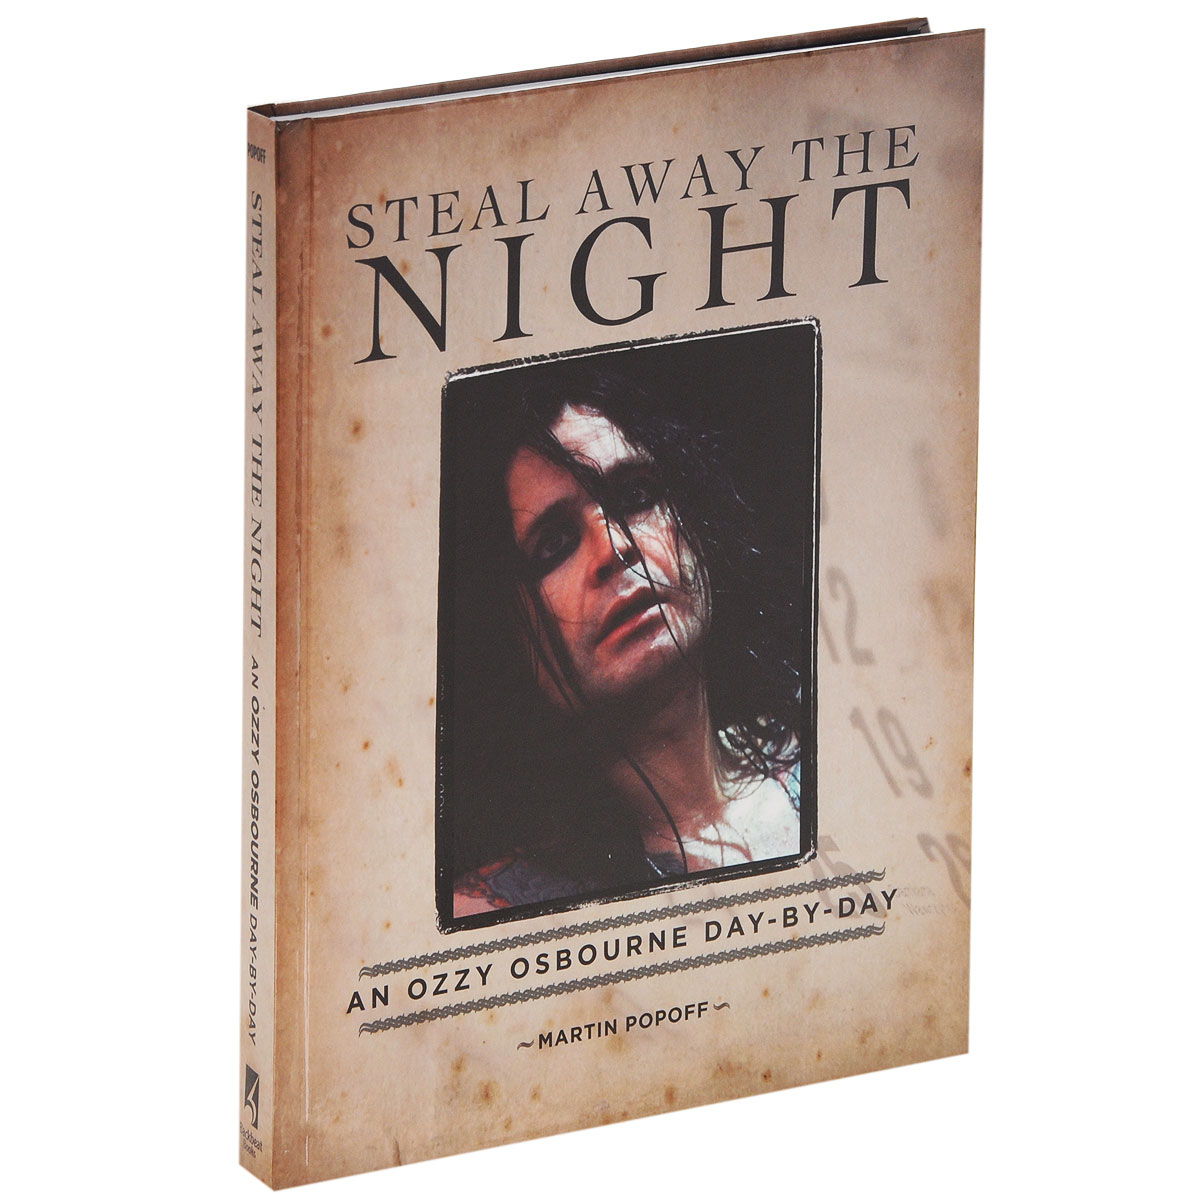 Steal Away the Night: An Ozzy Osbourne Day-by-Day cd диск osbourne ozzy diary of a madman 2cd